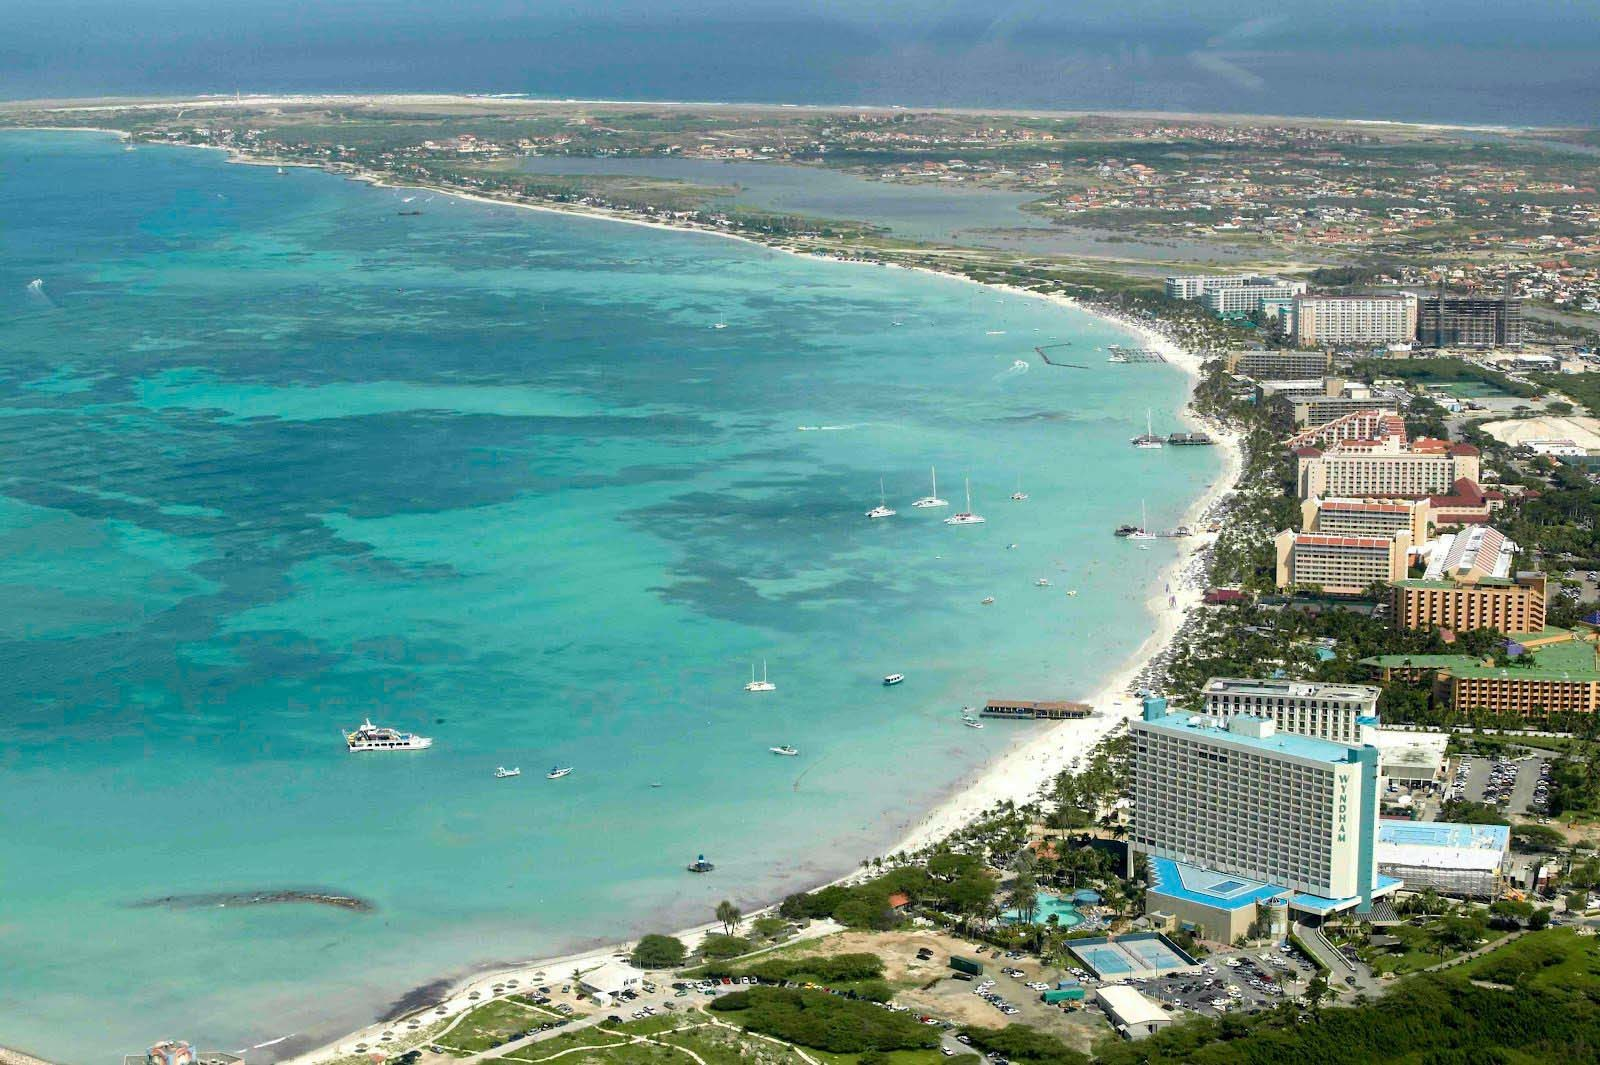 City - Aruba, Caribe 6